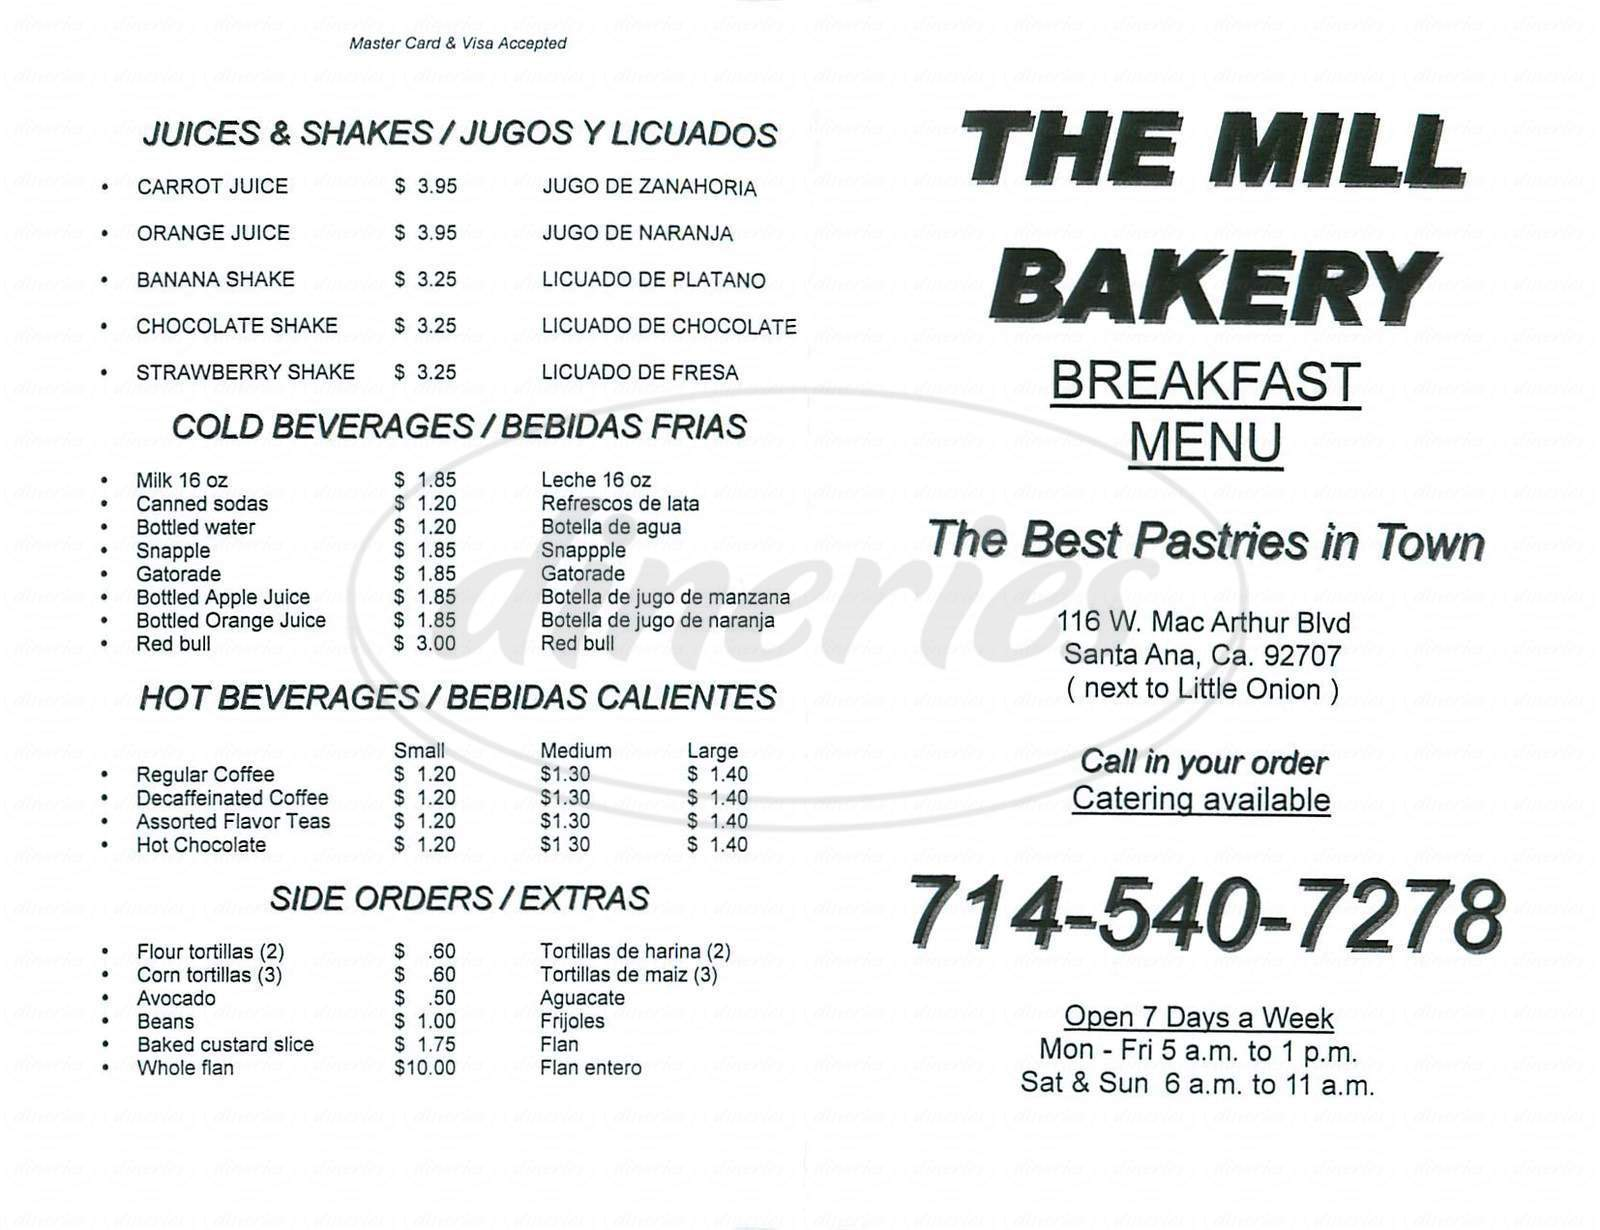 menu for The Mill Bakery